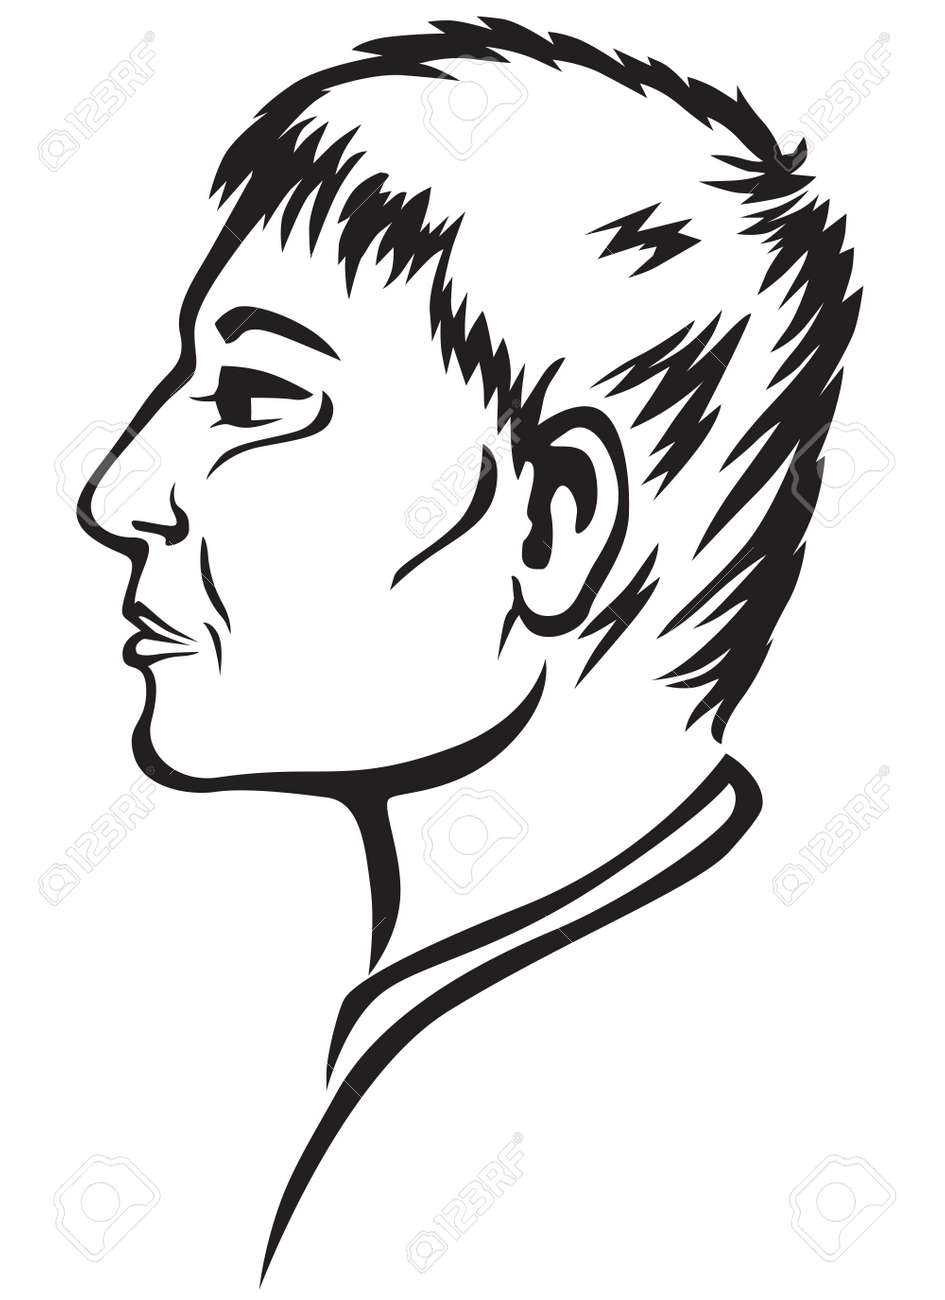 Contour image of a man Stock Vector - 18541777